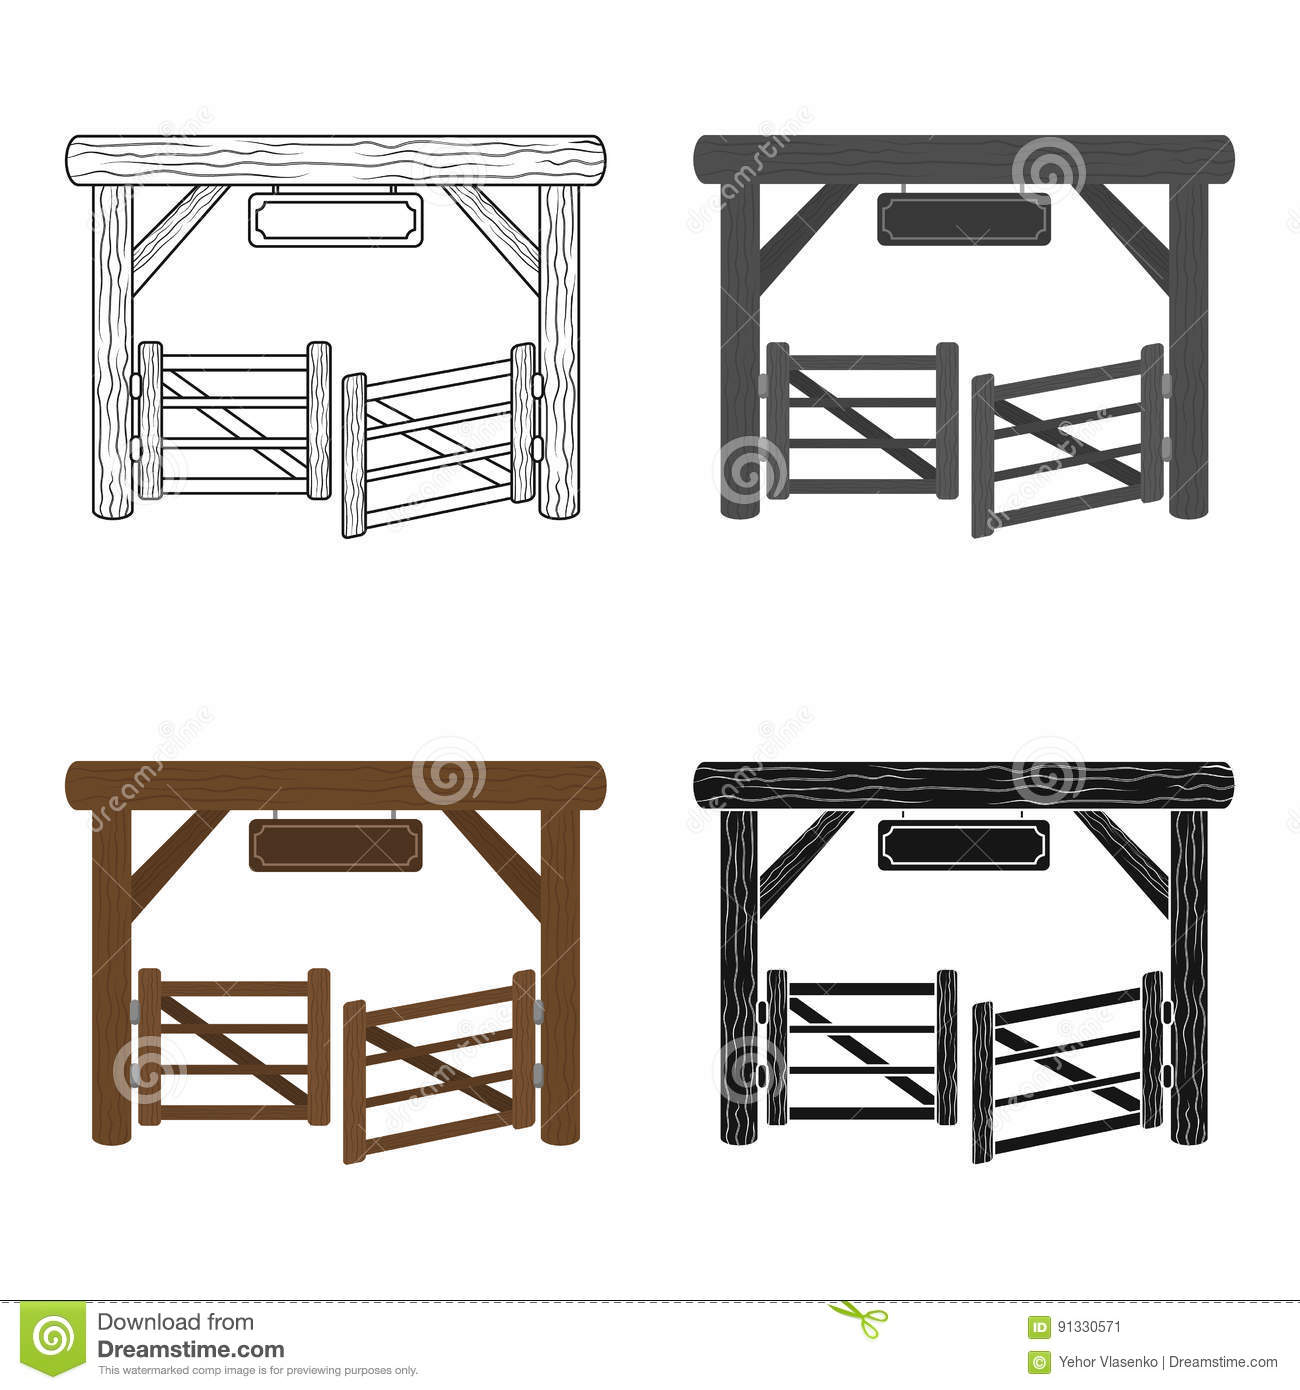 Paddock gate icon in cartoon style isolated on white background. Rodeo symbol stock vector illustration.